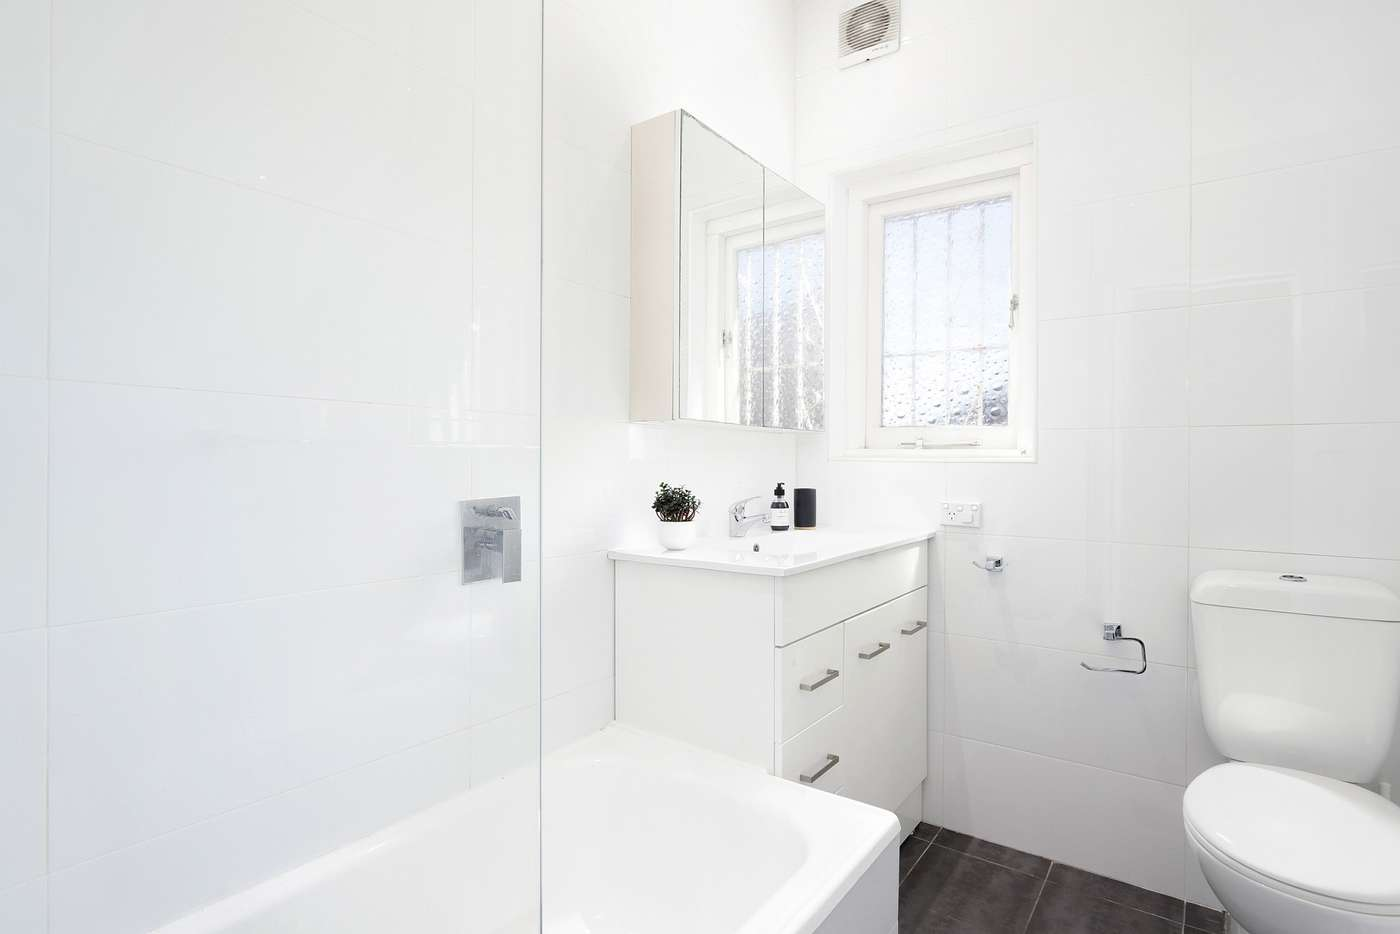 Fifth view of Homely apartment listing, 2/10 Albert Street, Randwick NSW 2031